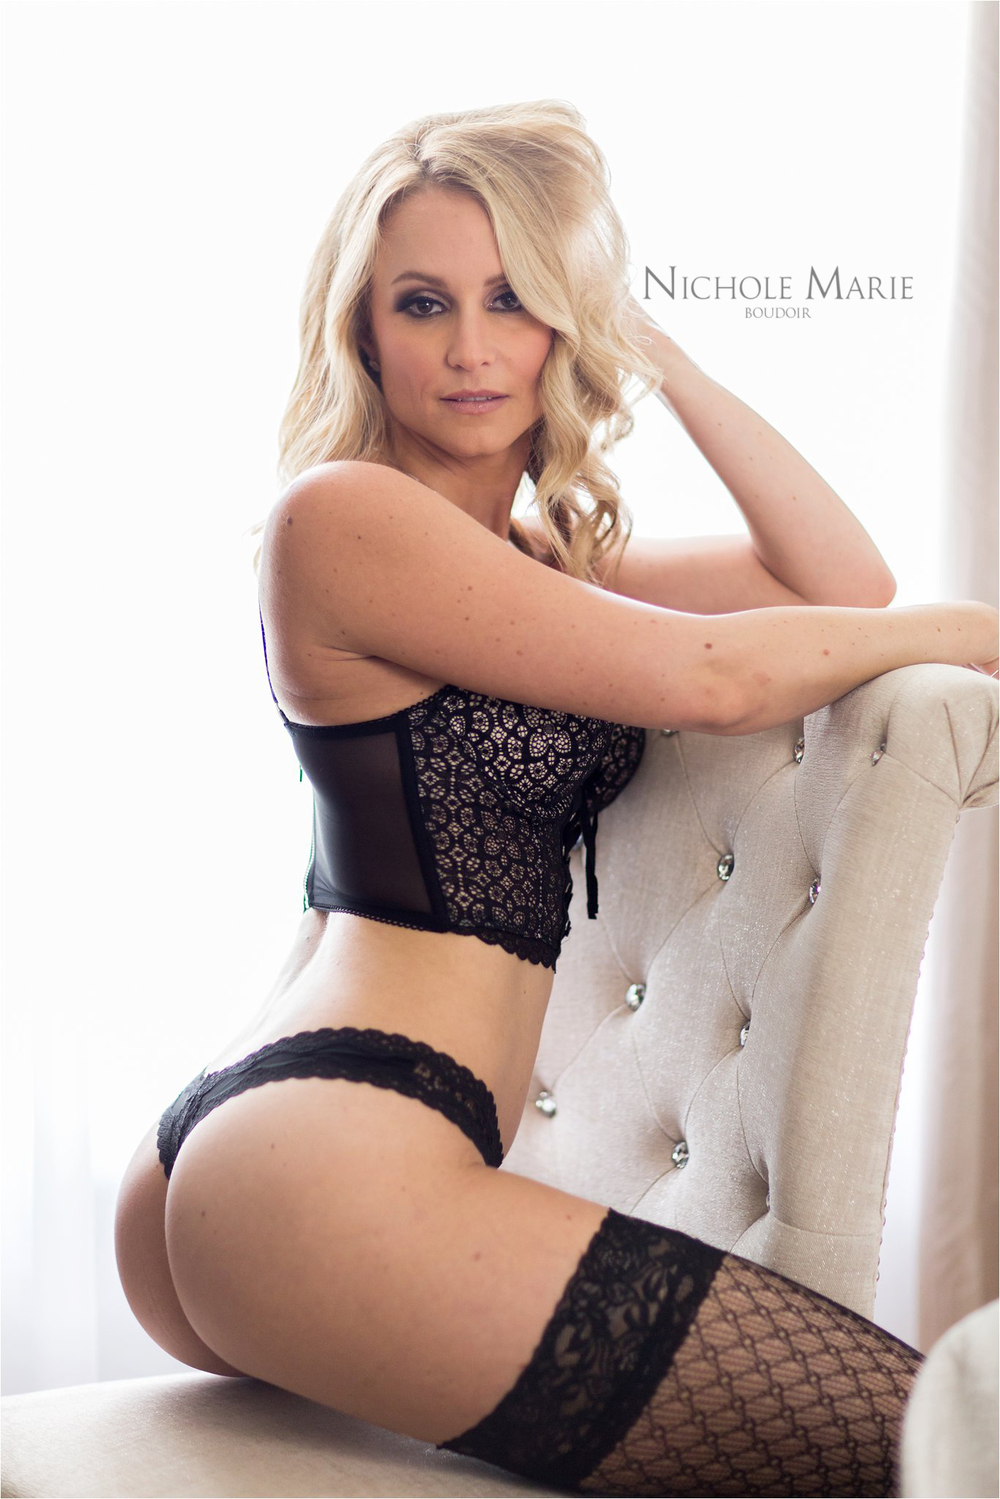 MY INVESTMENT IN YOUR BEAUTY | SEBASTIAN, FL BOUDOIR PHOTOGRAPHER | NICHOLE MARIE BOUDOIR